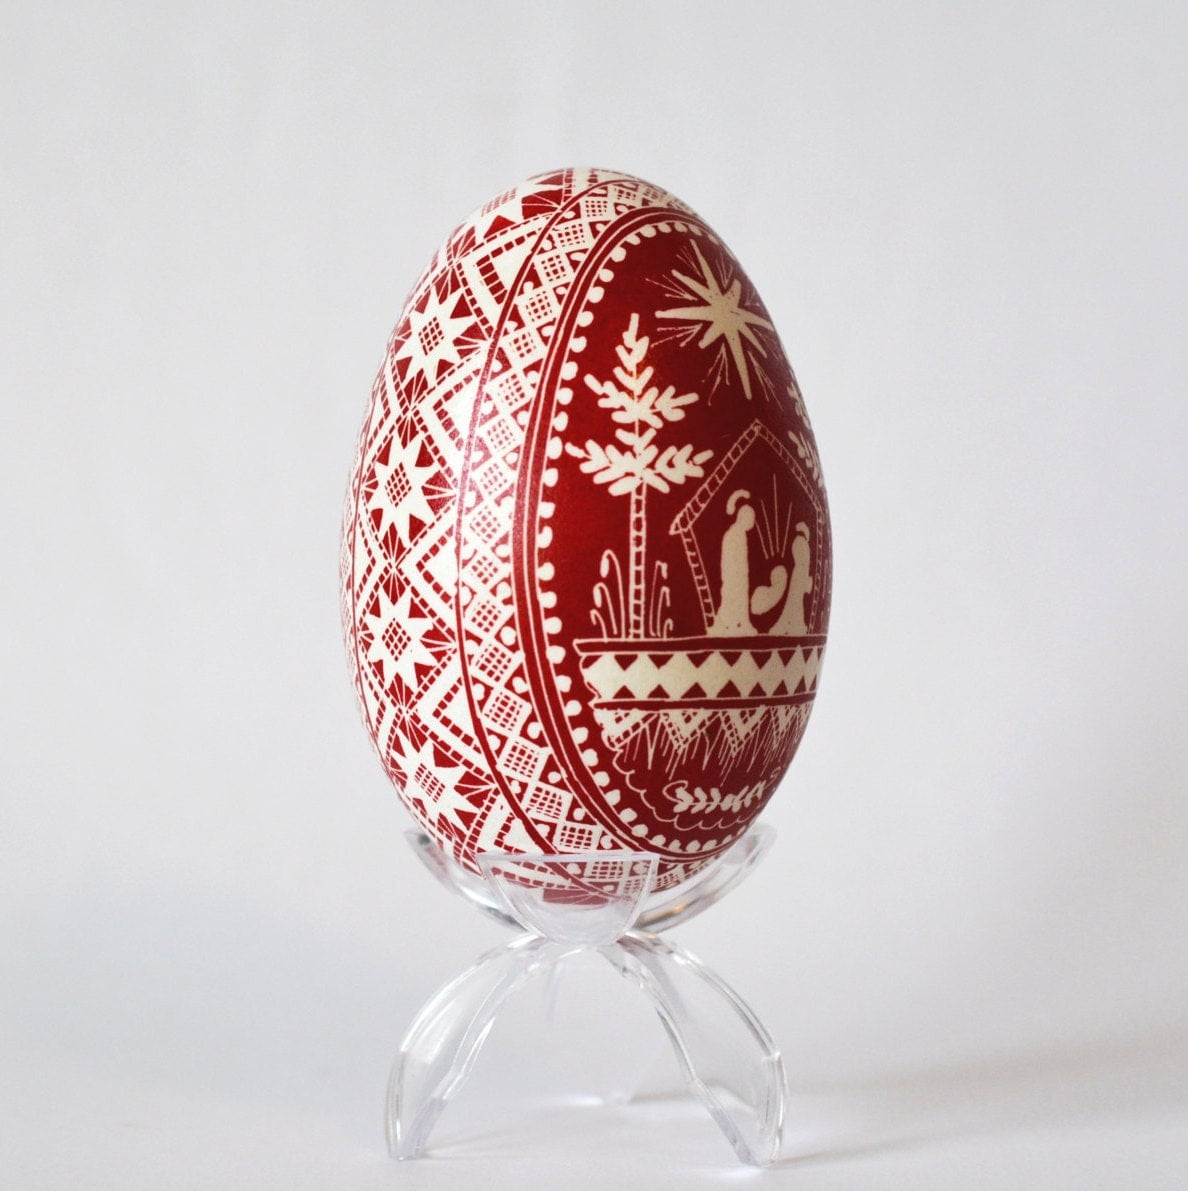 nativity goose egg pysanka ukrainian eggs by